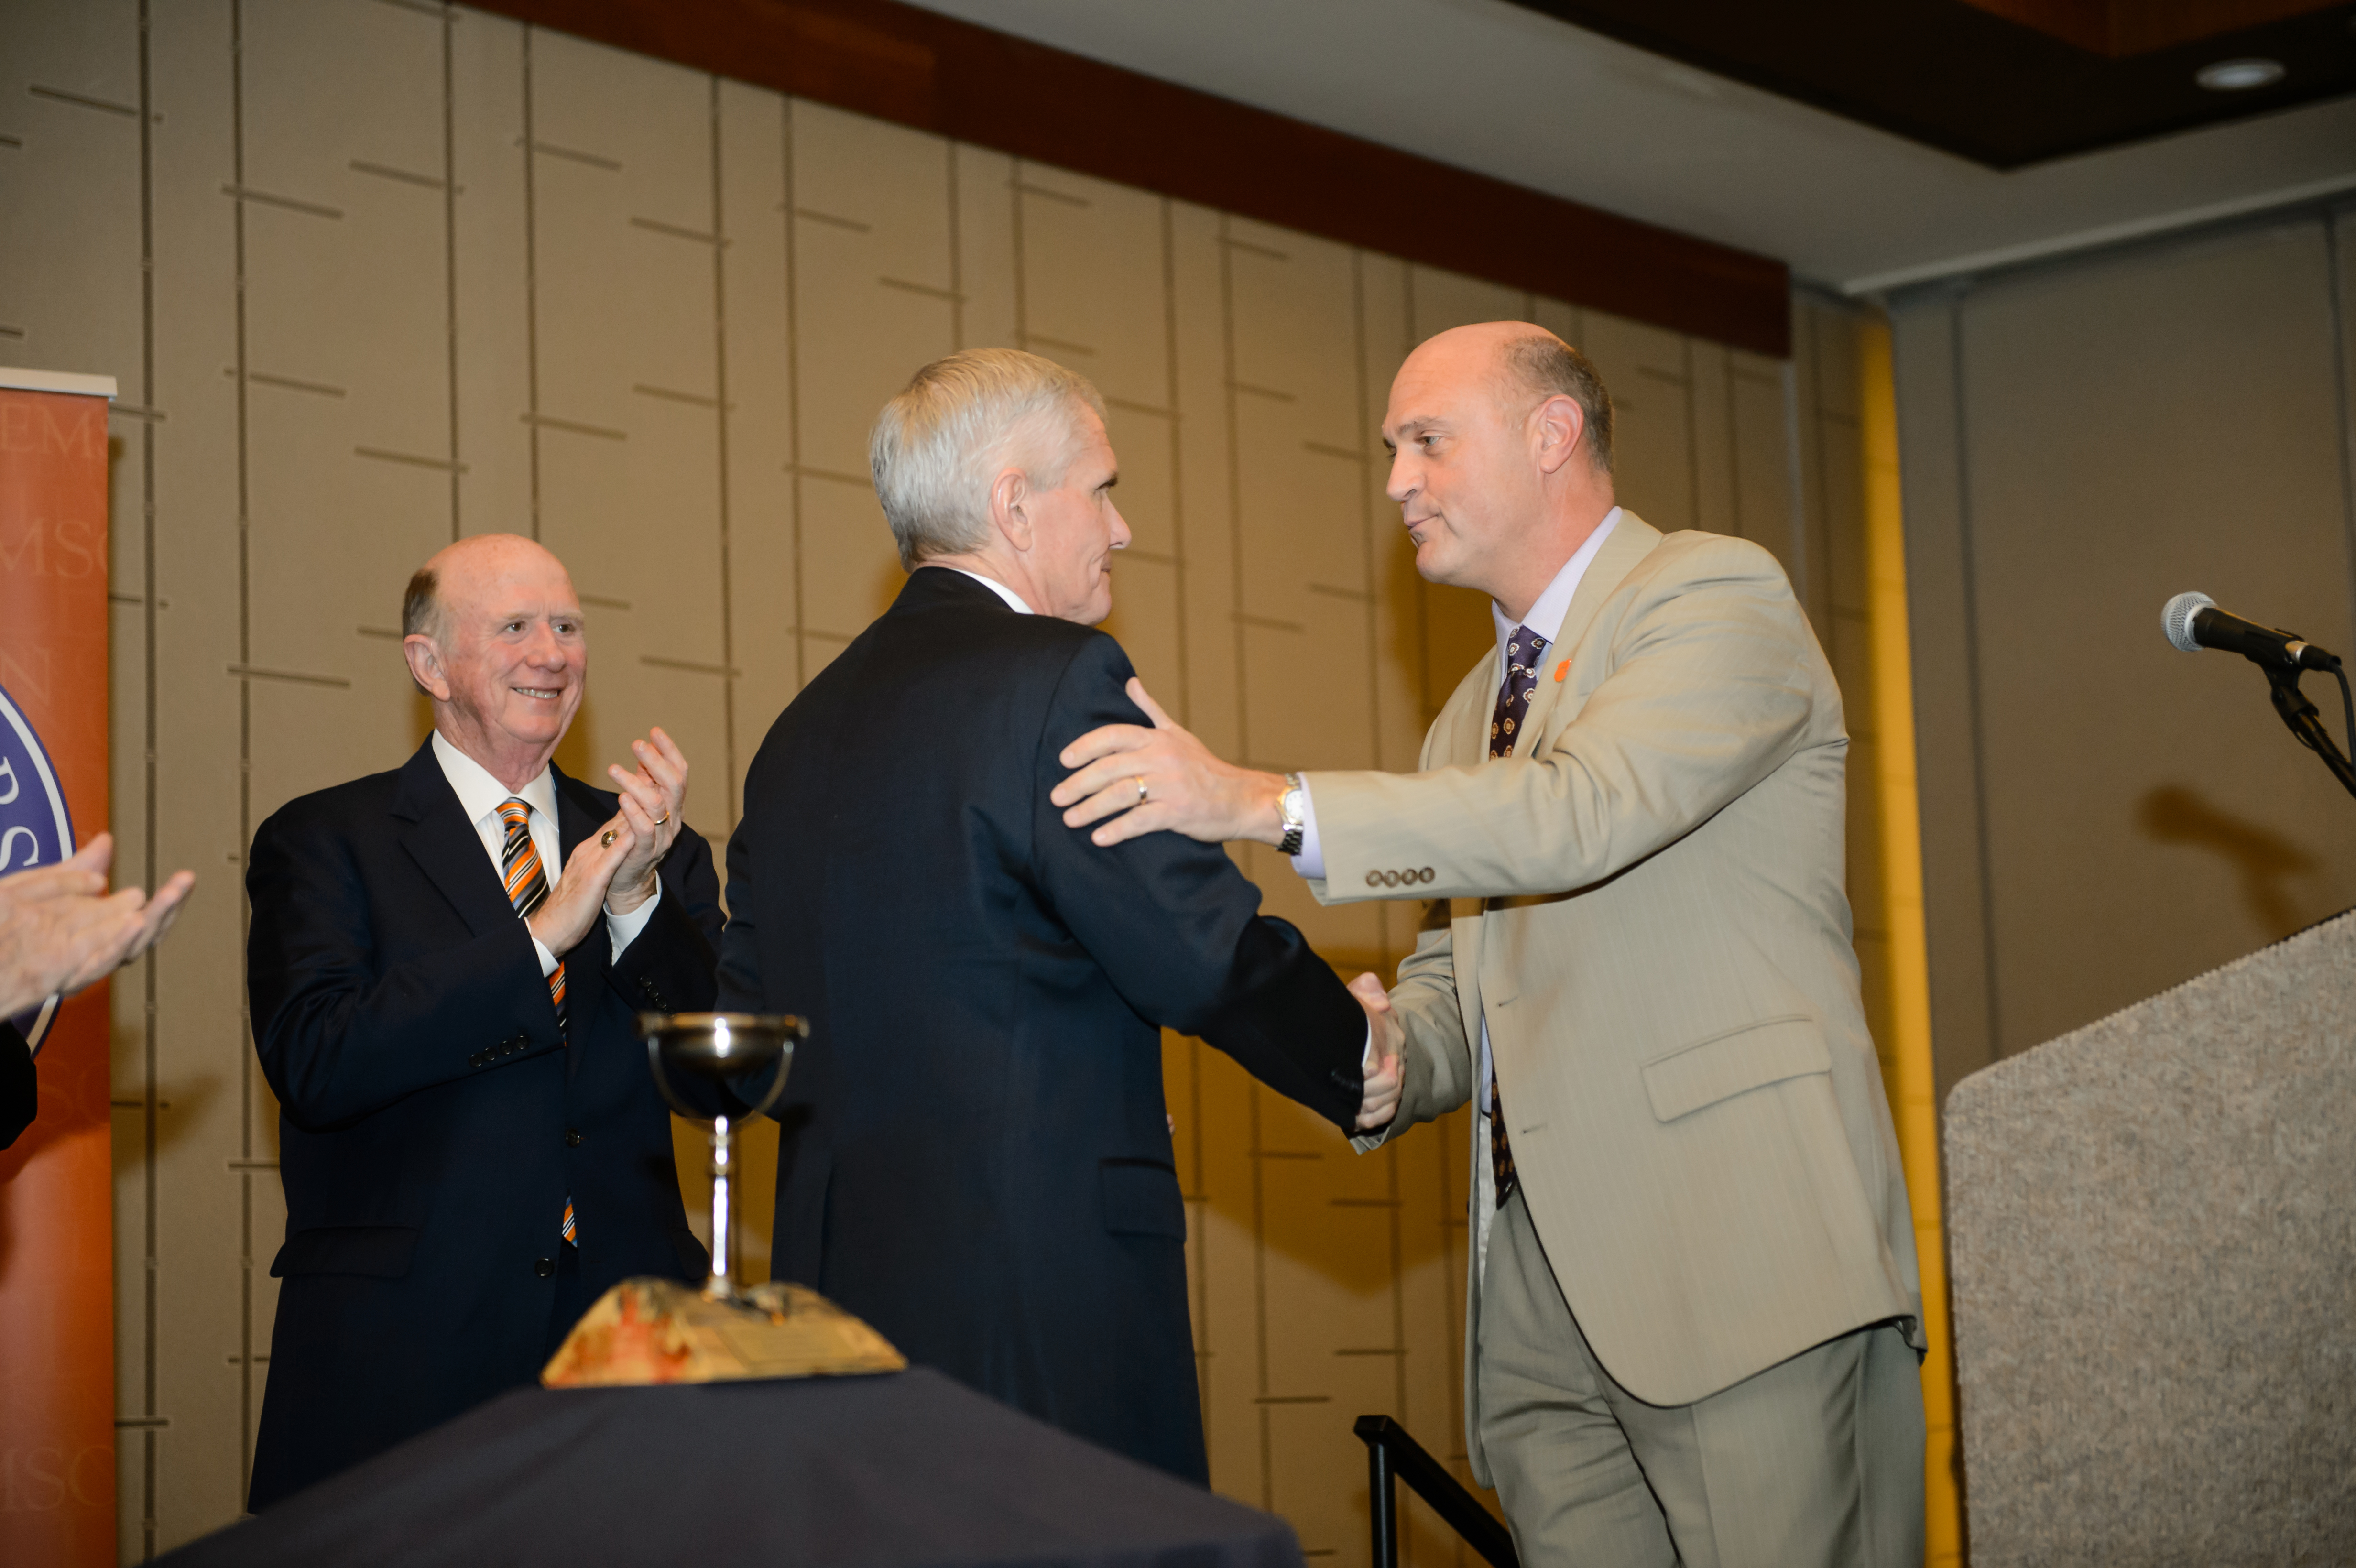 James Barker recieving the award from Clemson President, Dr. James Clements